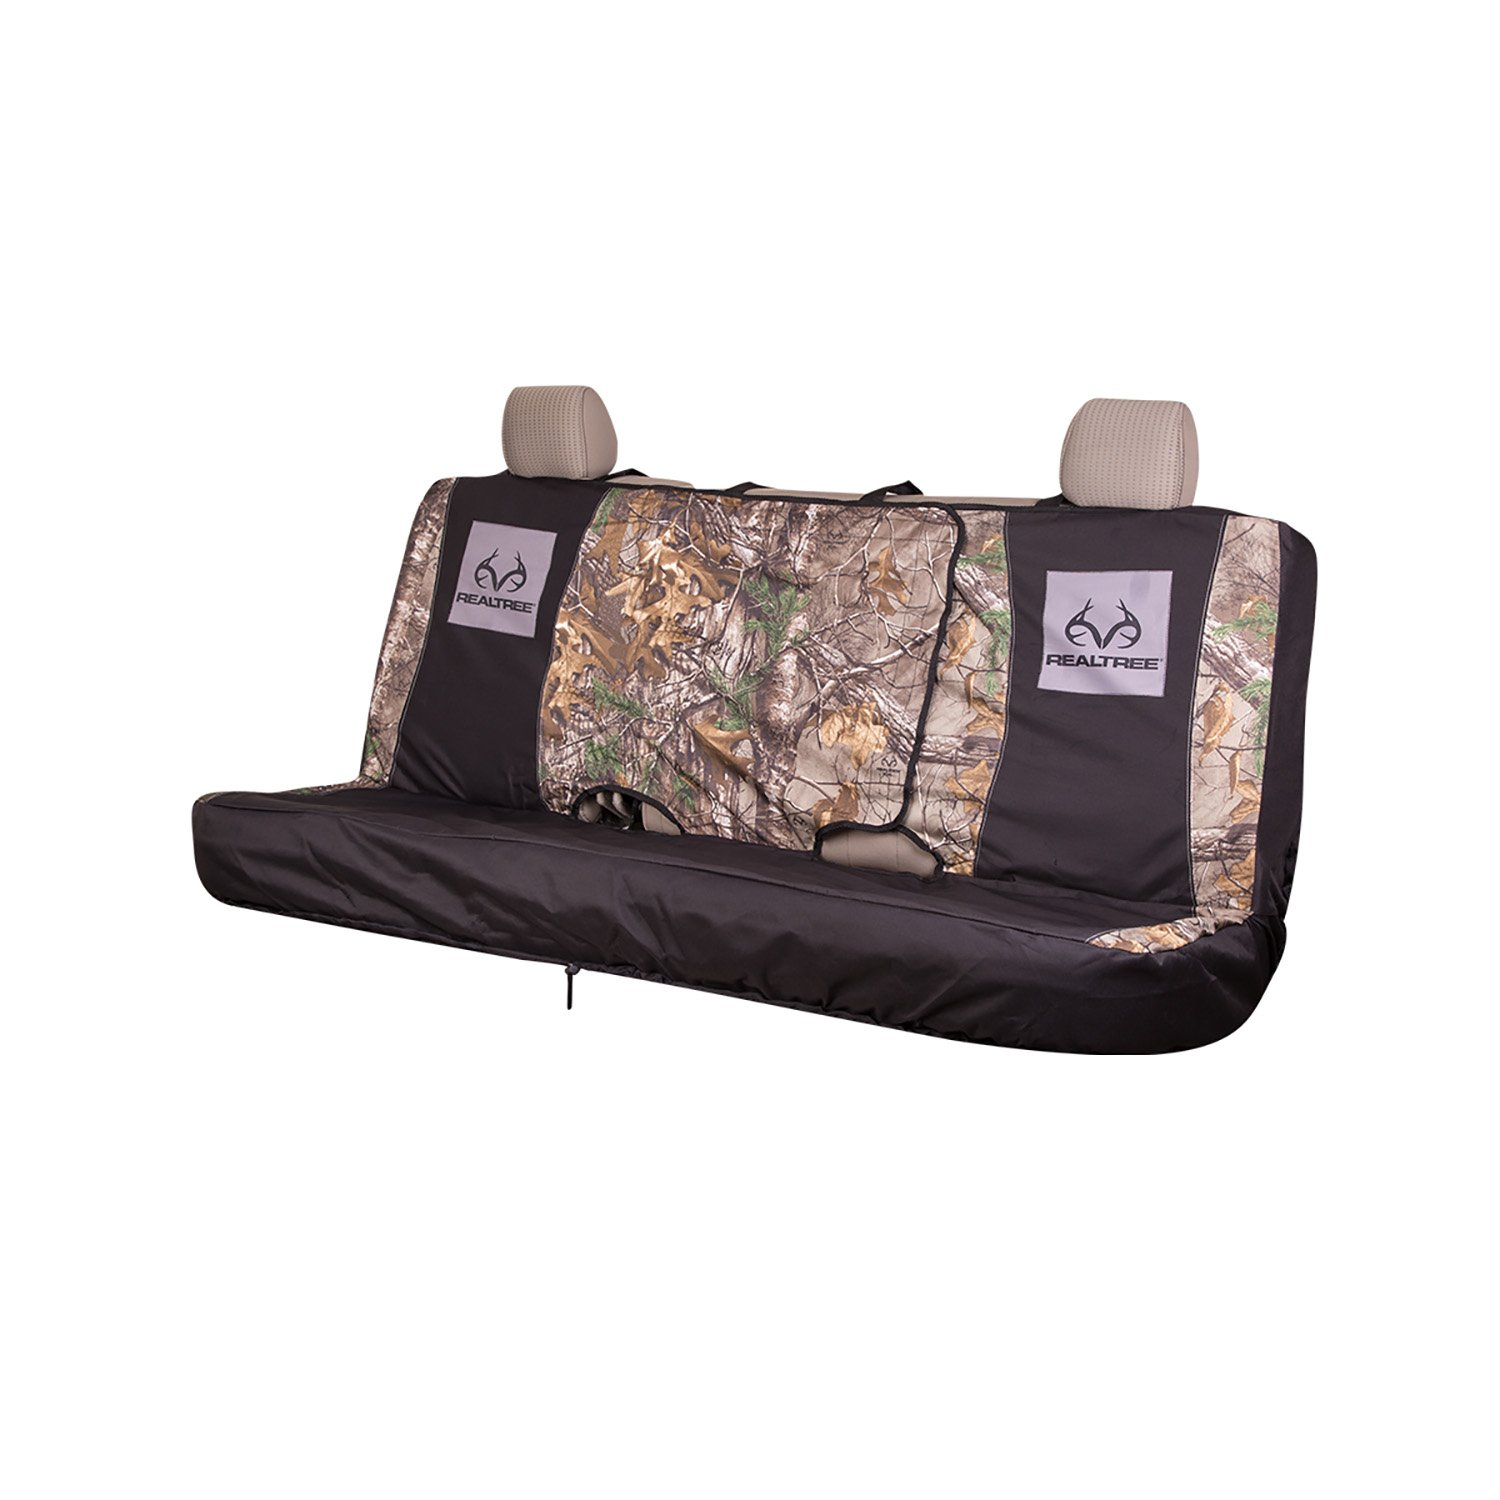 Rear Realtree Camo Floor Mats Xtra 2 Pack Signature Products Group